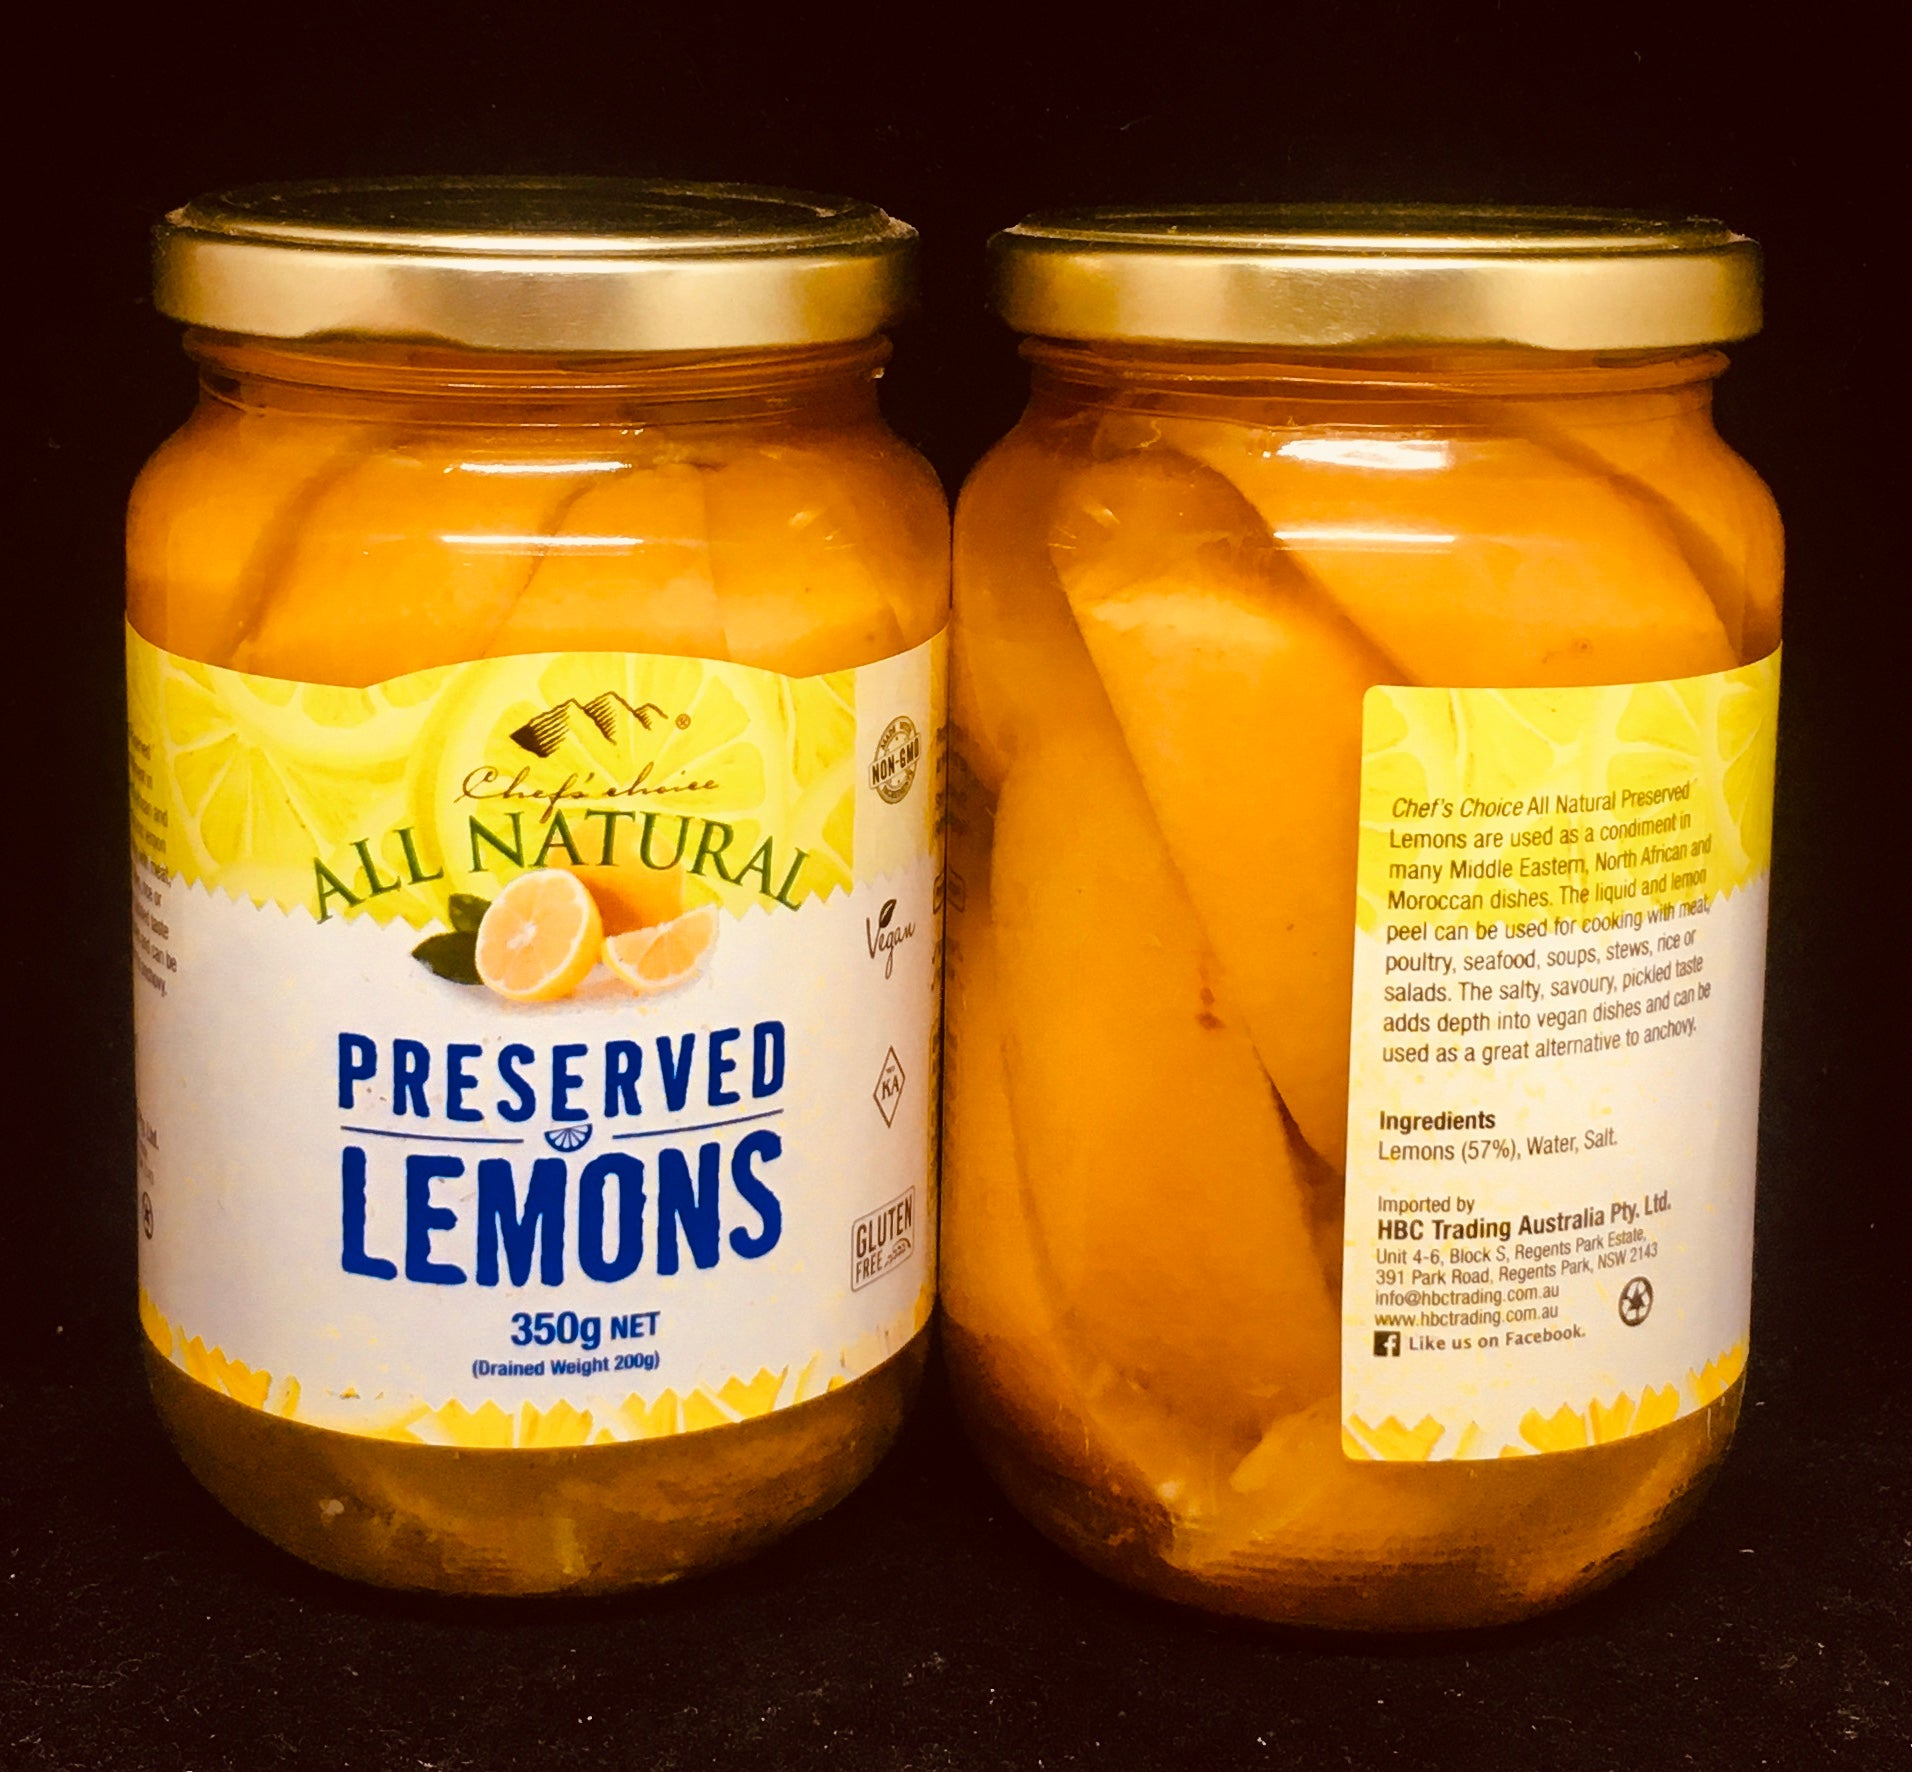 All Natural - Preserved Lemons